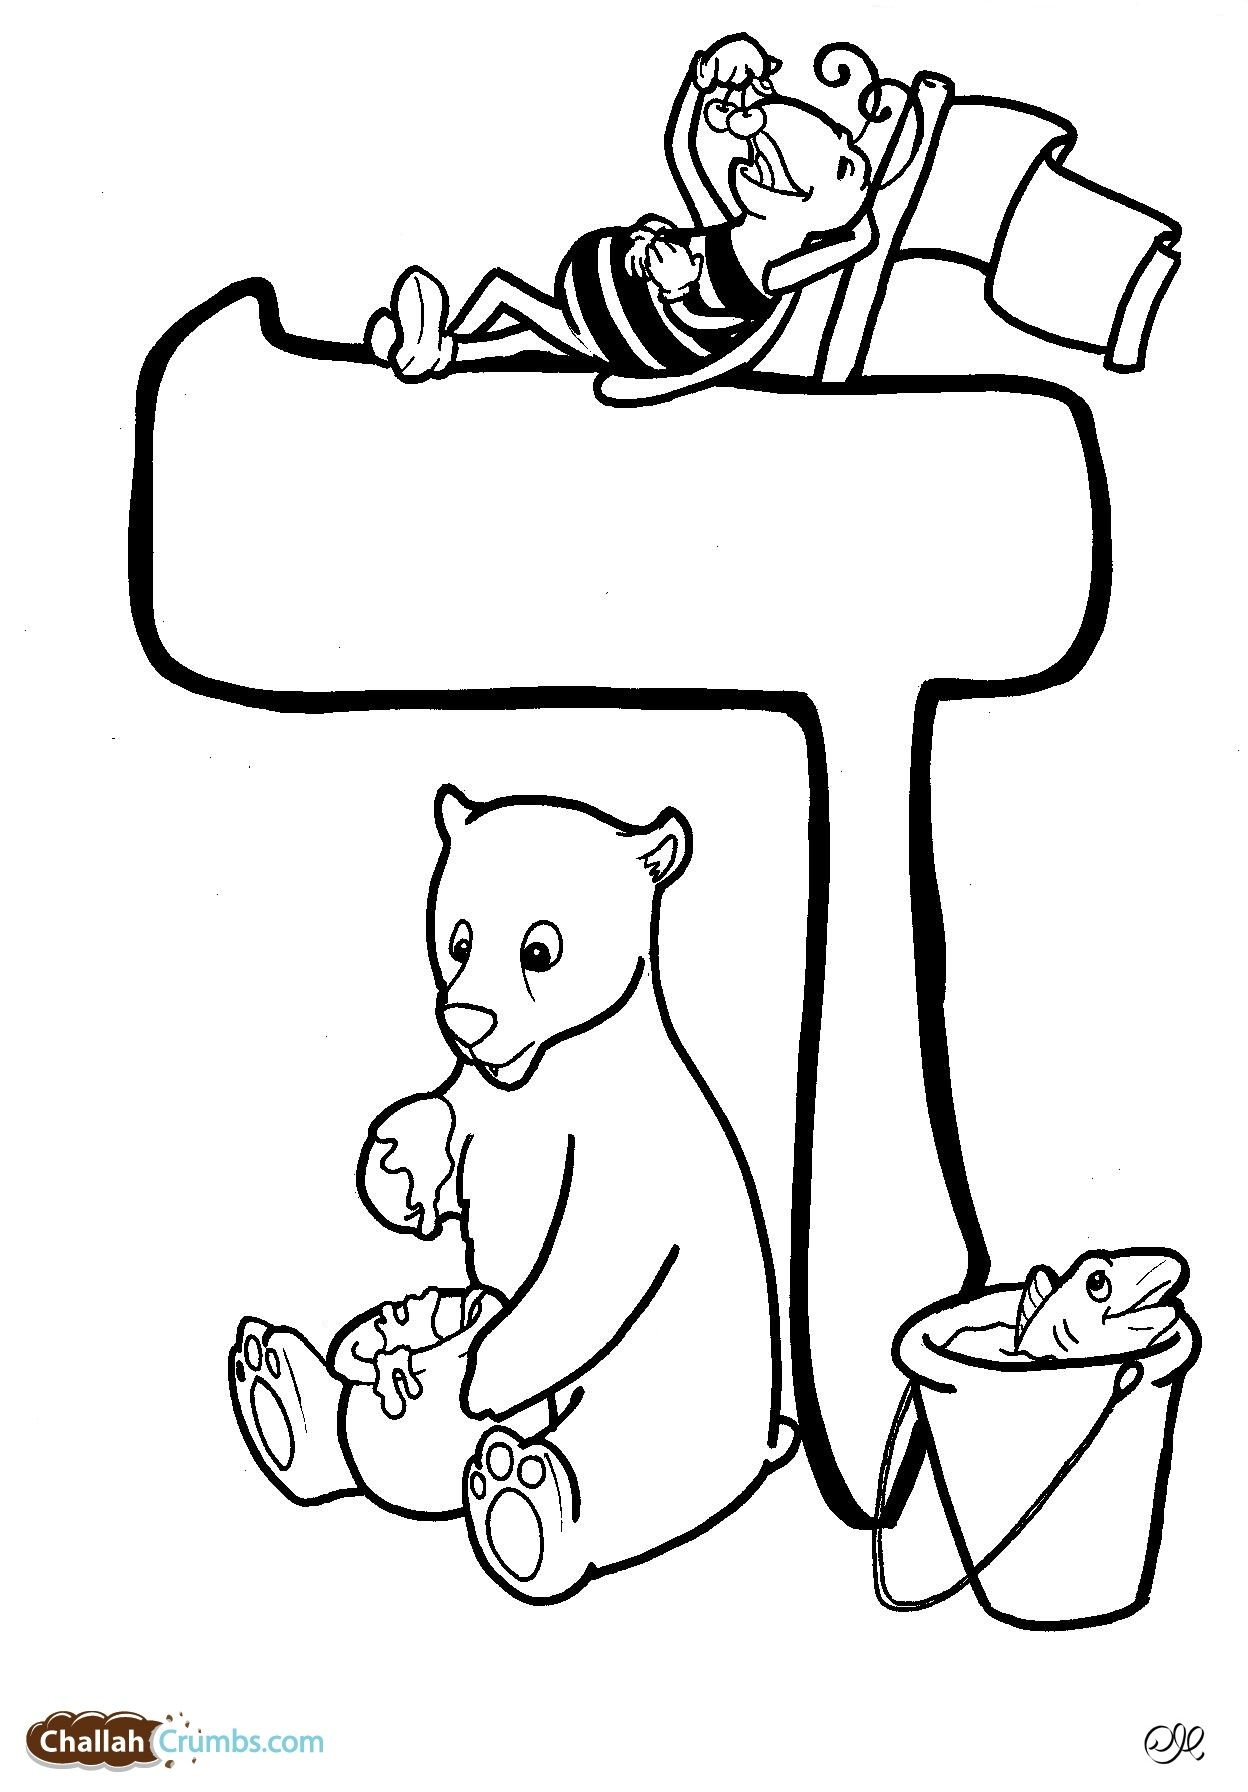 Daled Coloring Page Challah Crumbs Aleph Bet Alphabet Coloring Pages Hebrew Letters